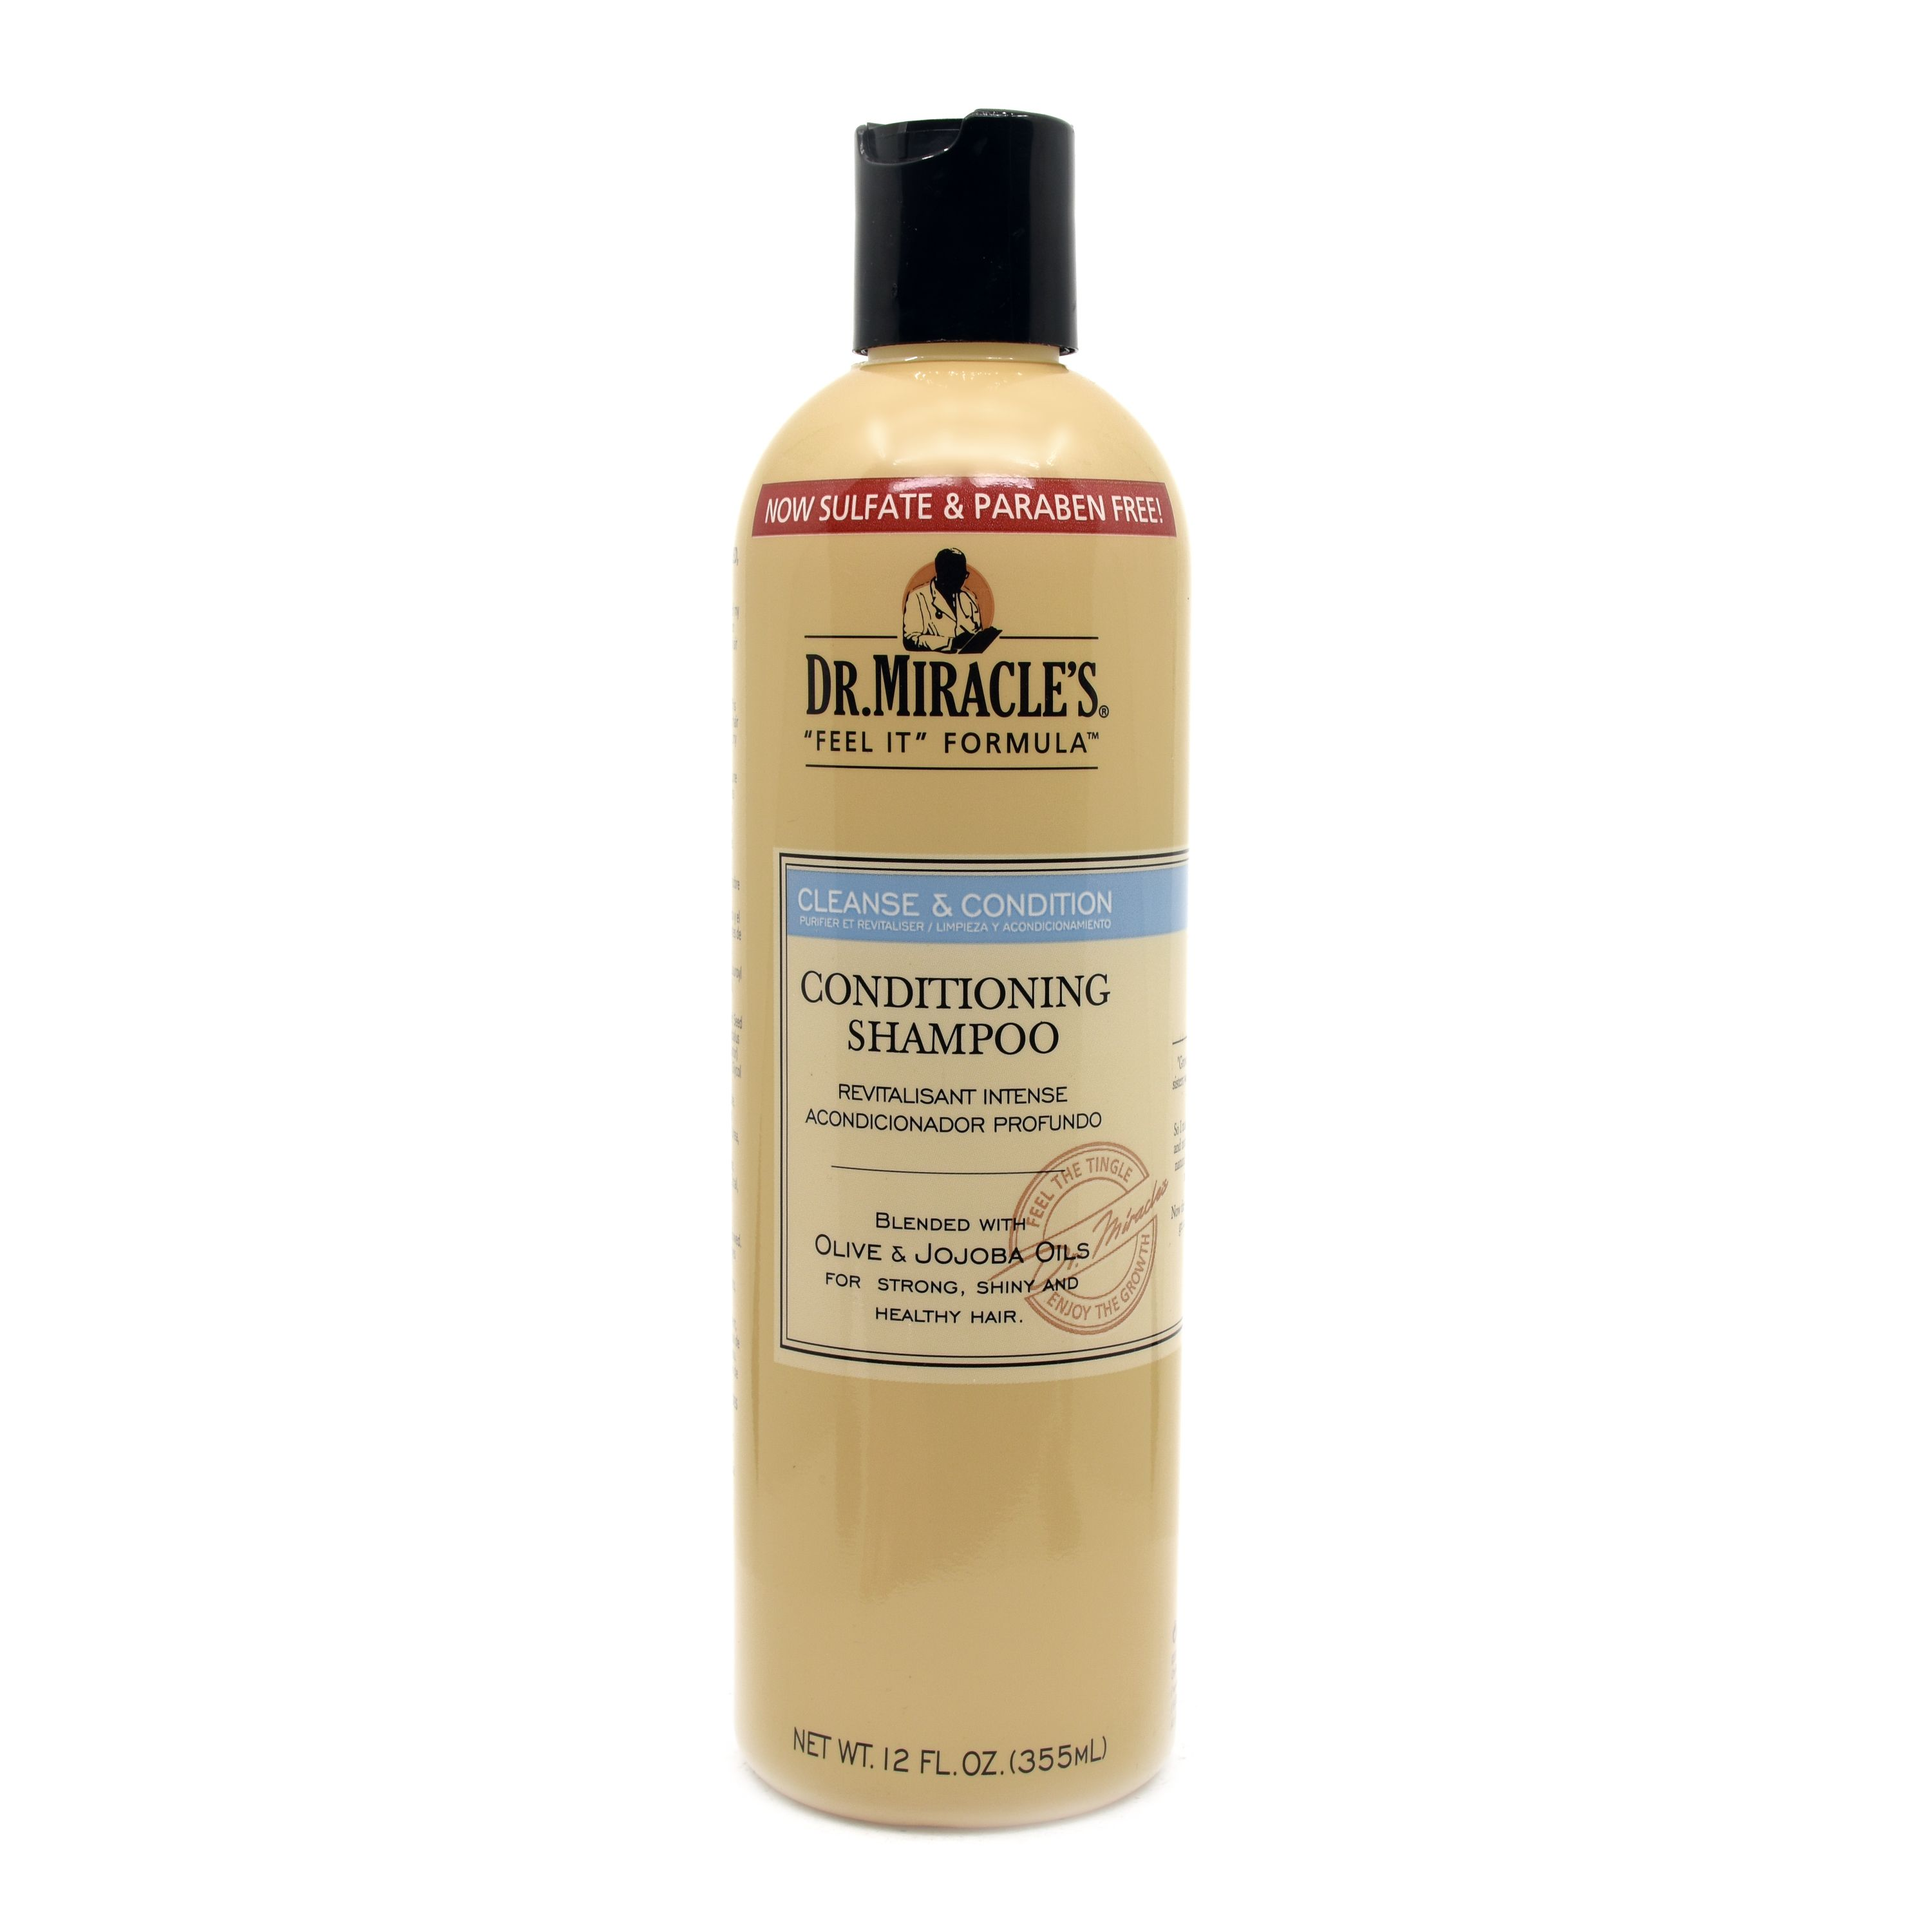 Dr. Miracle's Conditioning Shampoo - 12oz